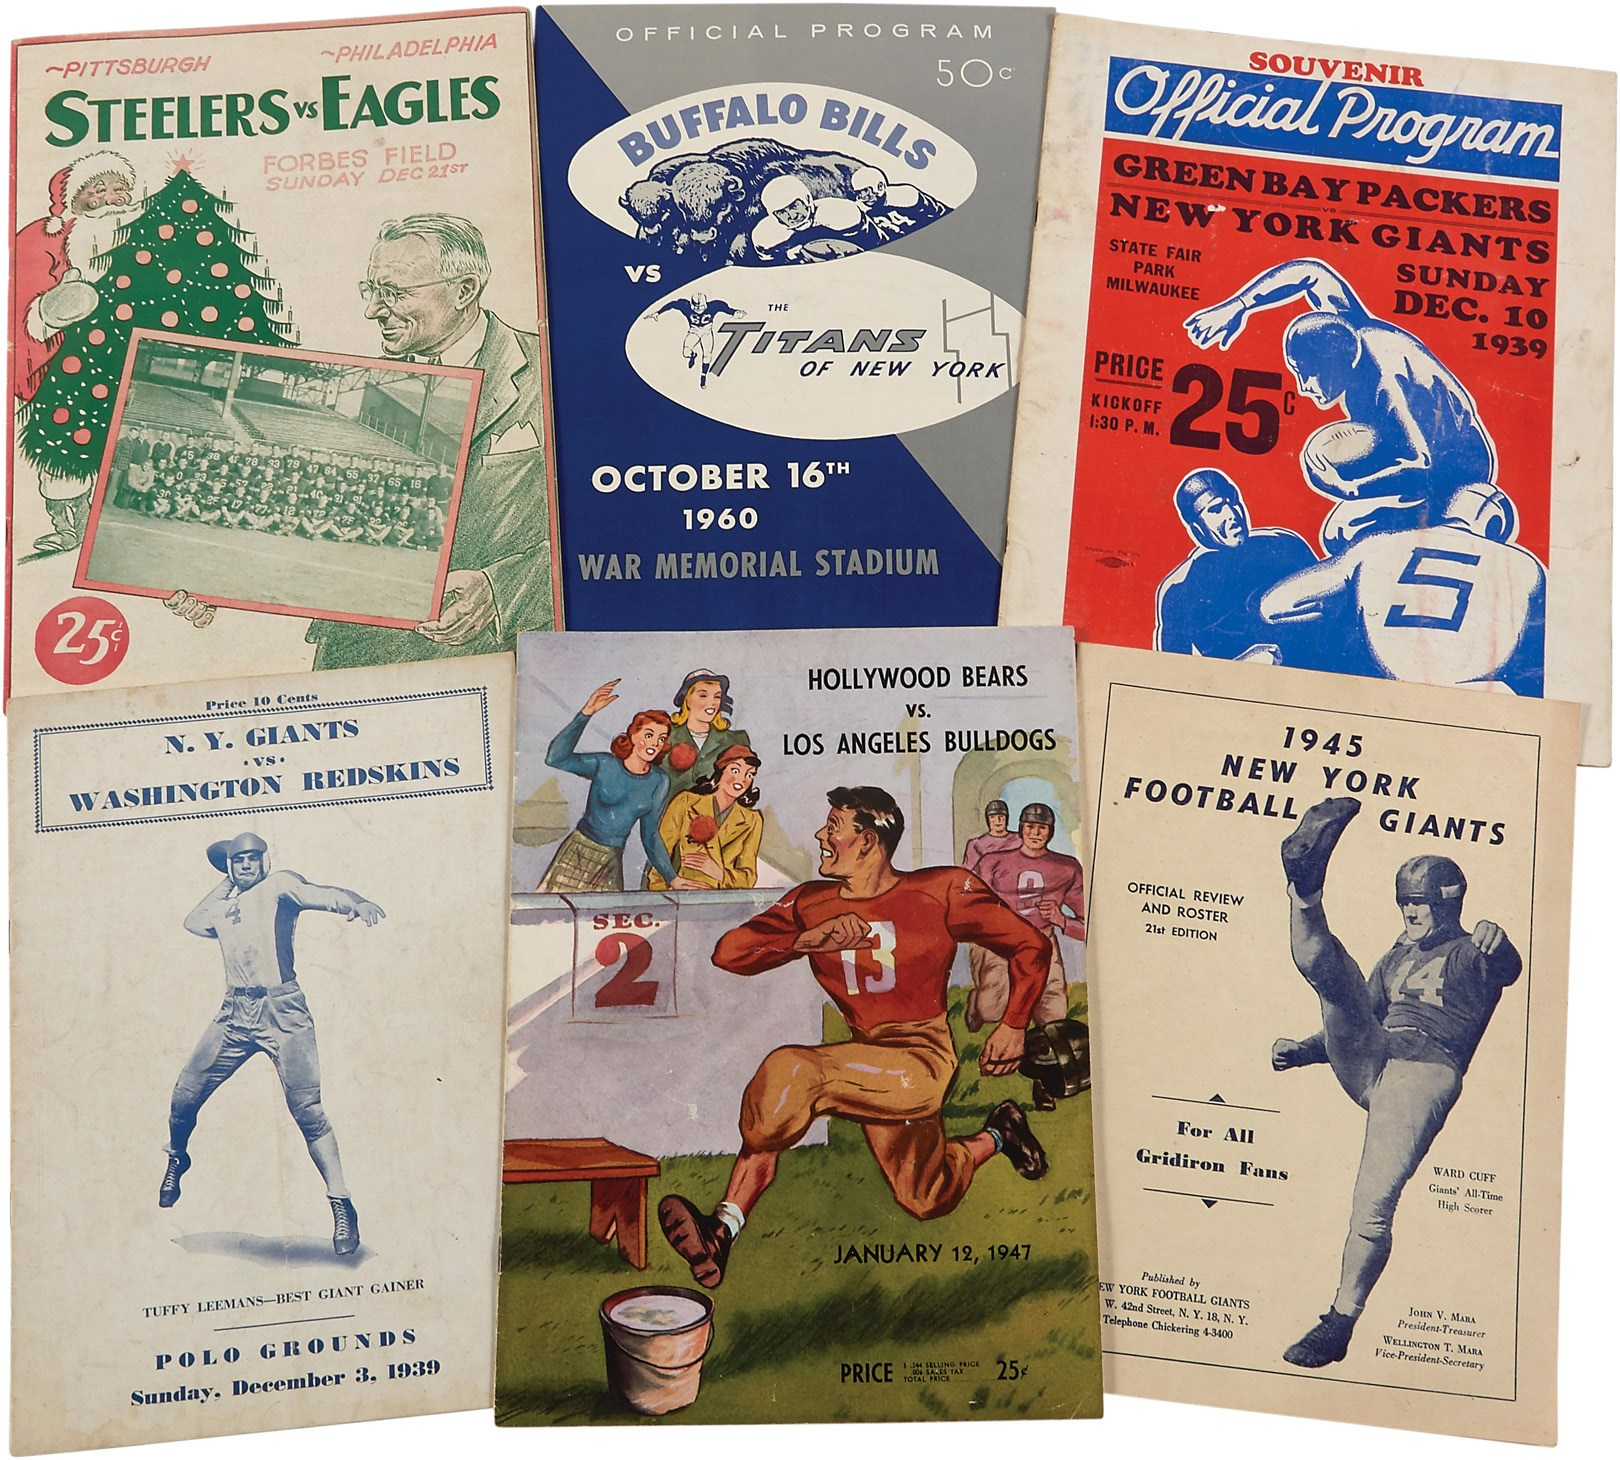 Early Pro Football Program Collection with 1939 NFL Championship (35+)